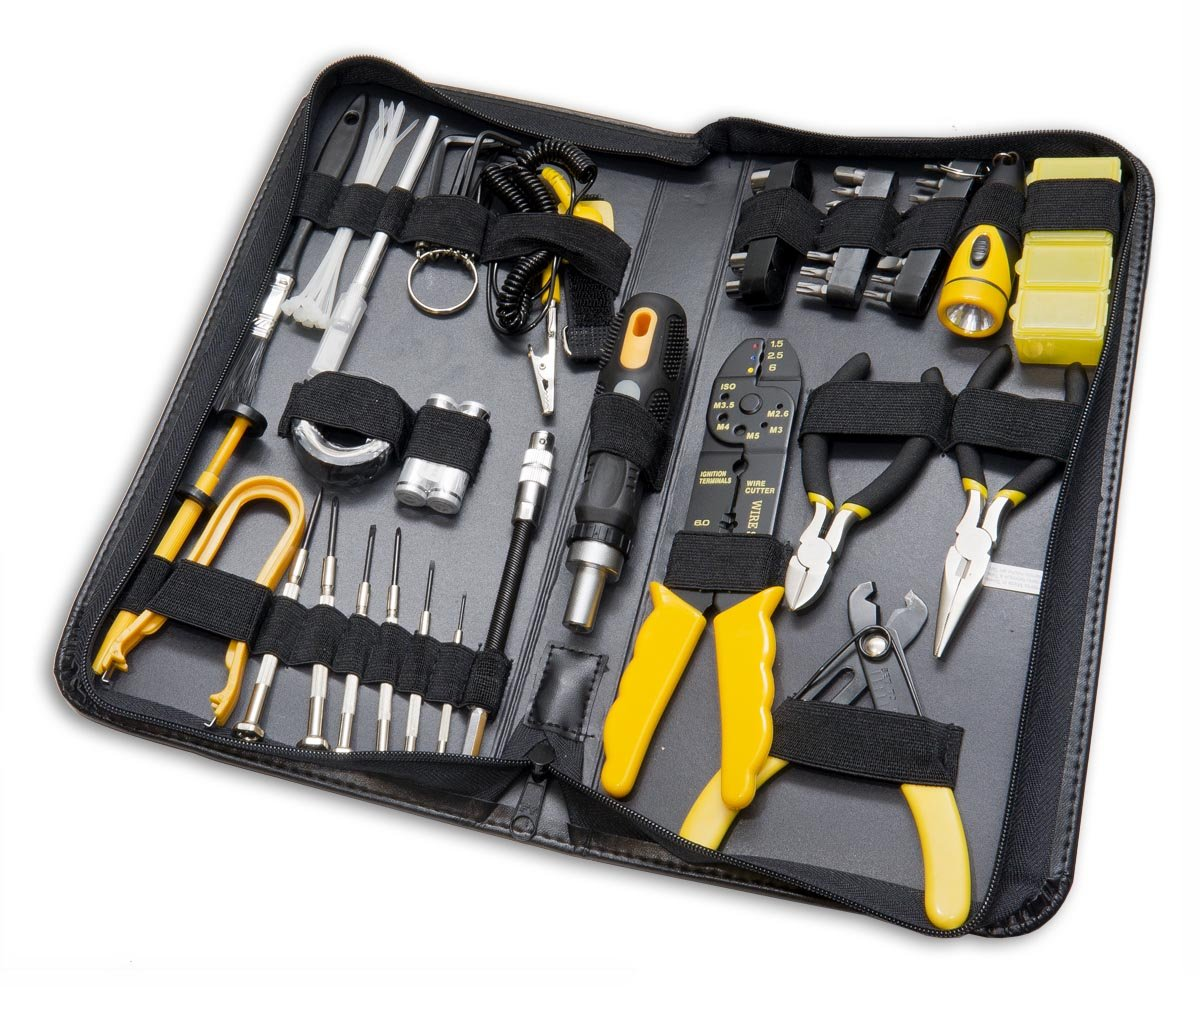 Syba 32 Piece Hobby Tool Kit Housed in a Fold out Case (SY-ACC65052)